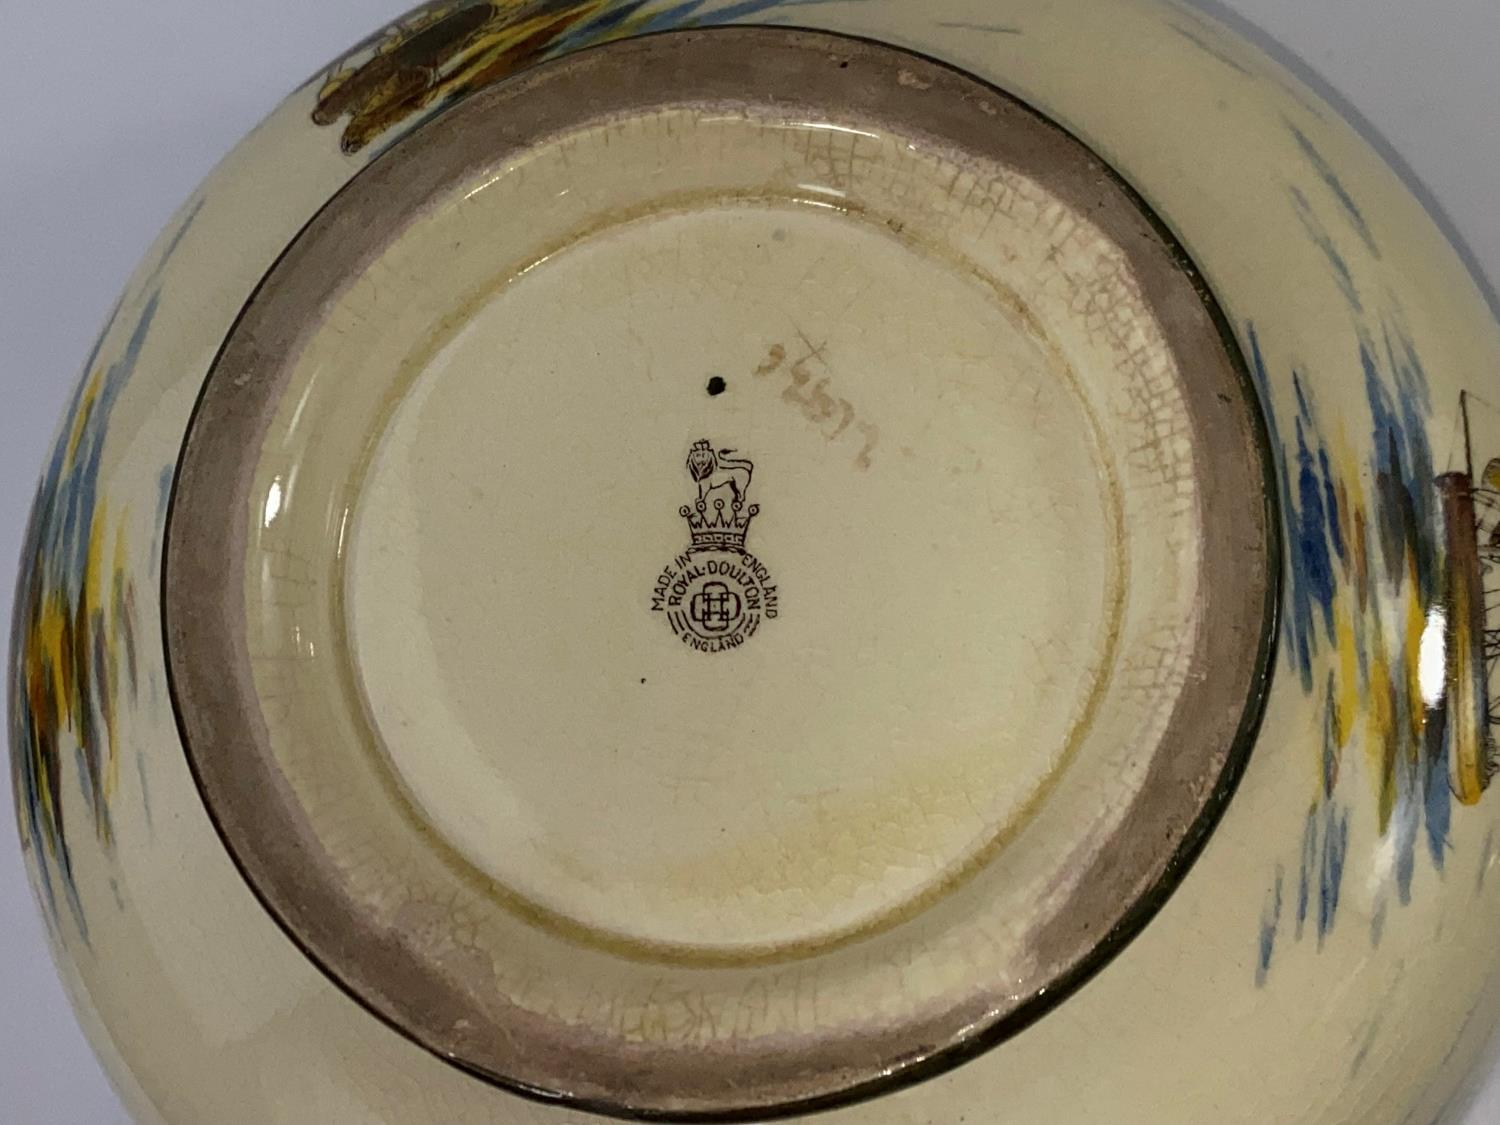 A Royal Doulton - decorated with sailing boats to the interior and exterior - Image 3 of 3